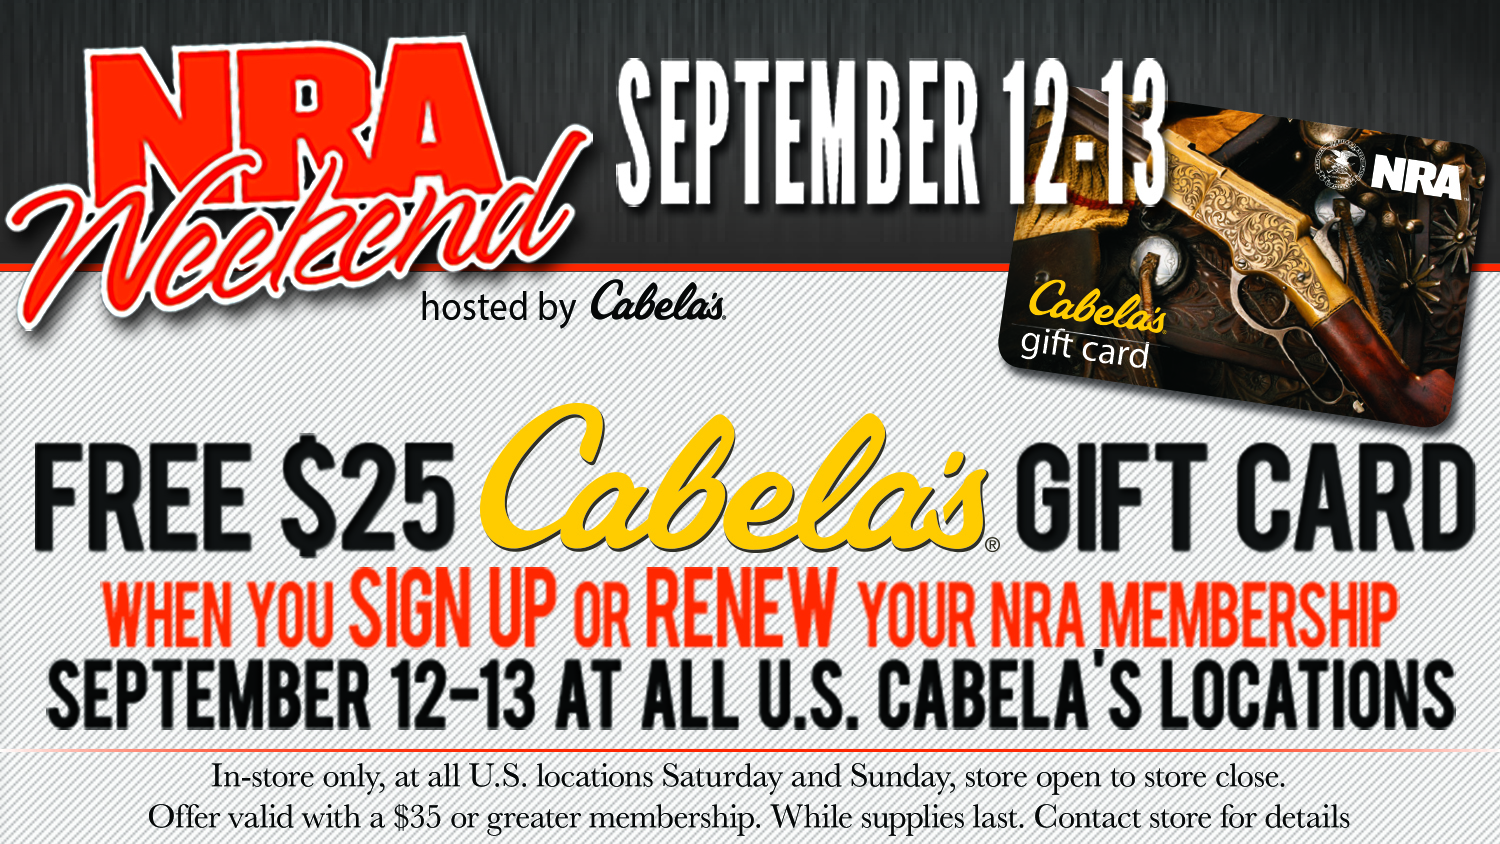 NRA Blog | Cabela's Hosts NRA Weekend This Sept. 12-13